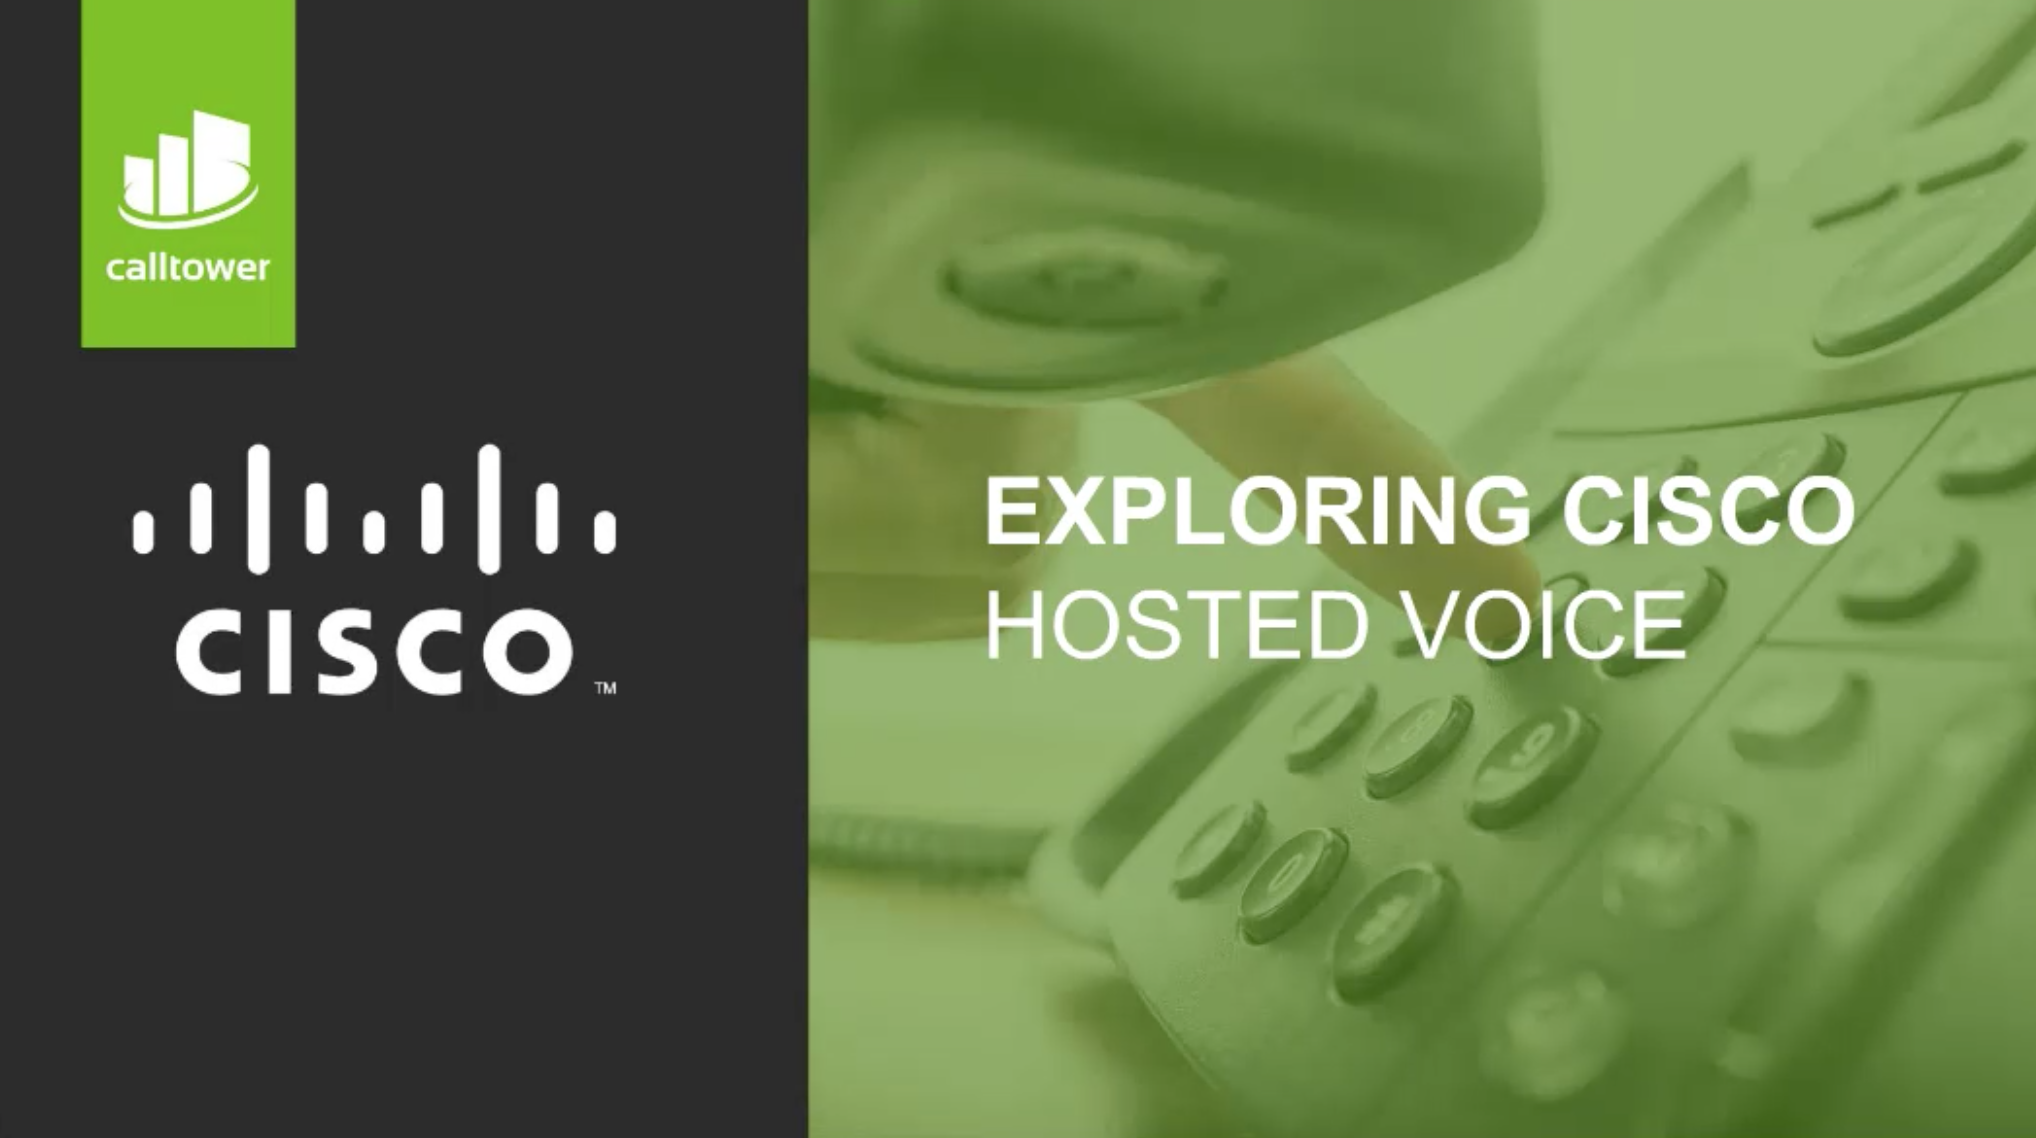 Webinar_Exploring_Cisco_Hosted_Voice.png